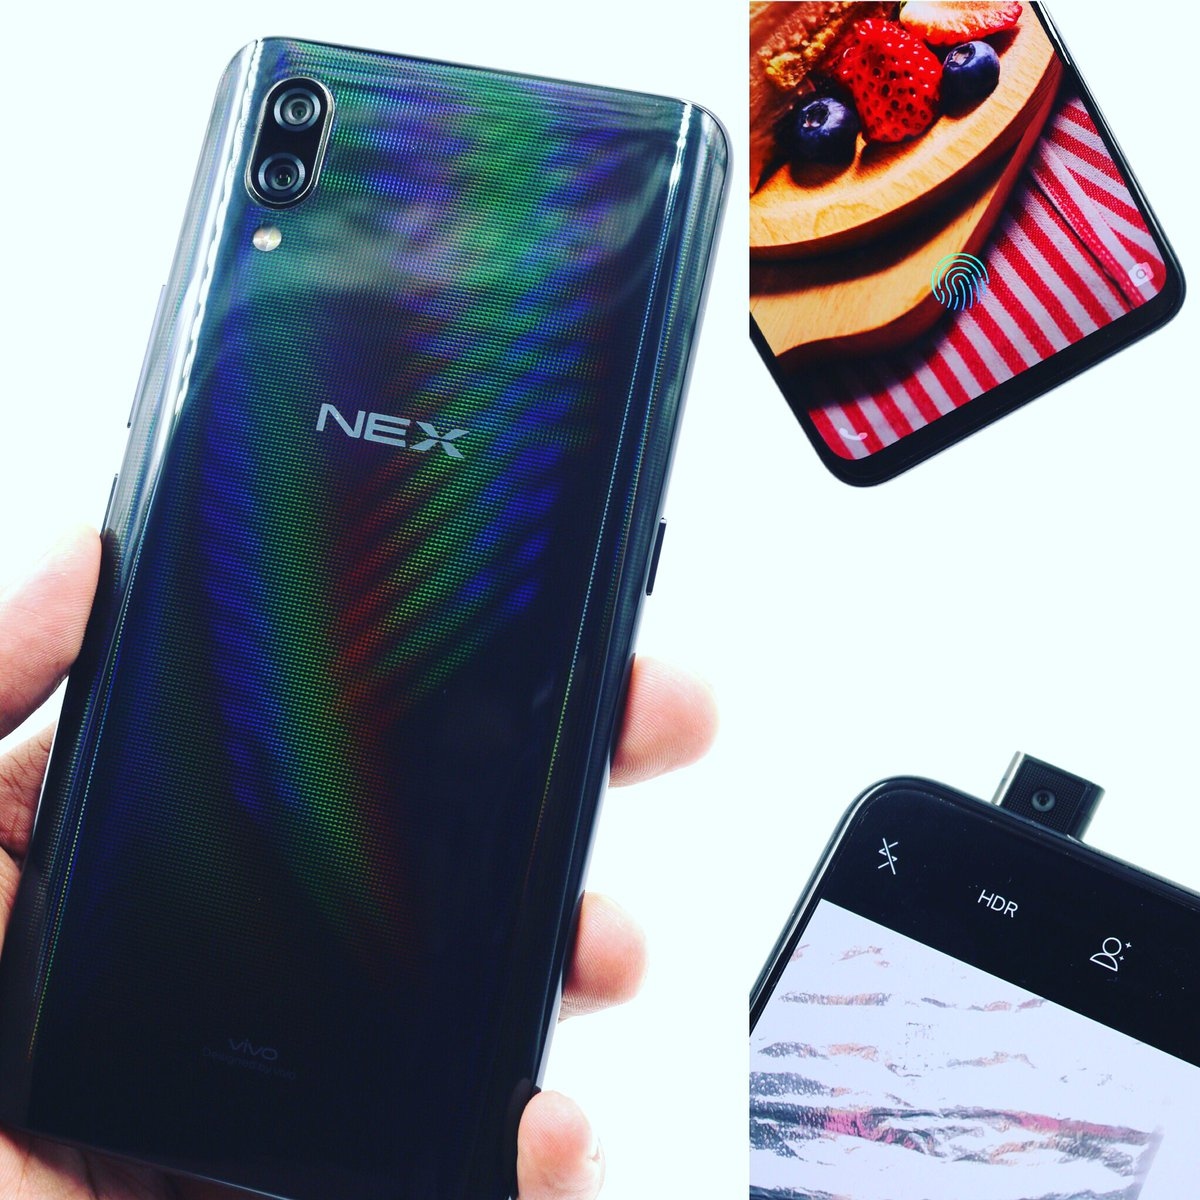 Vivo nex price : 44,990 INR. What do you feel about the pricing and the device?